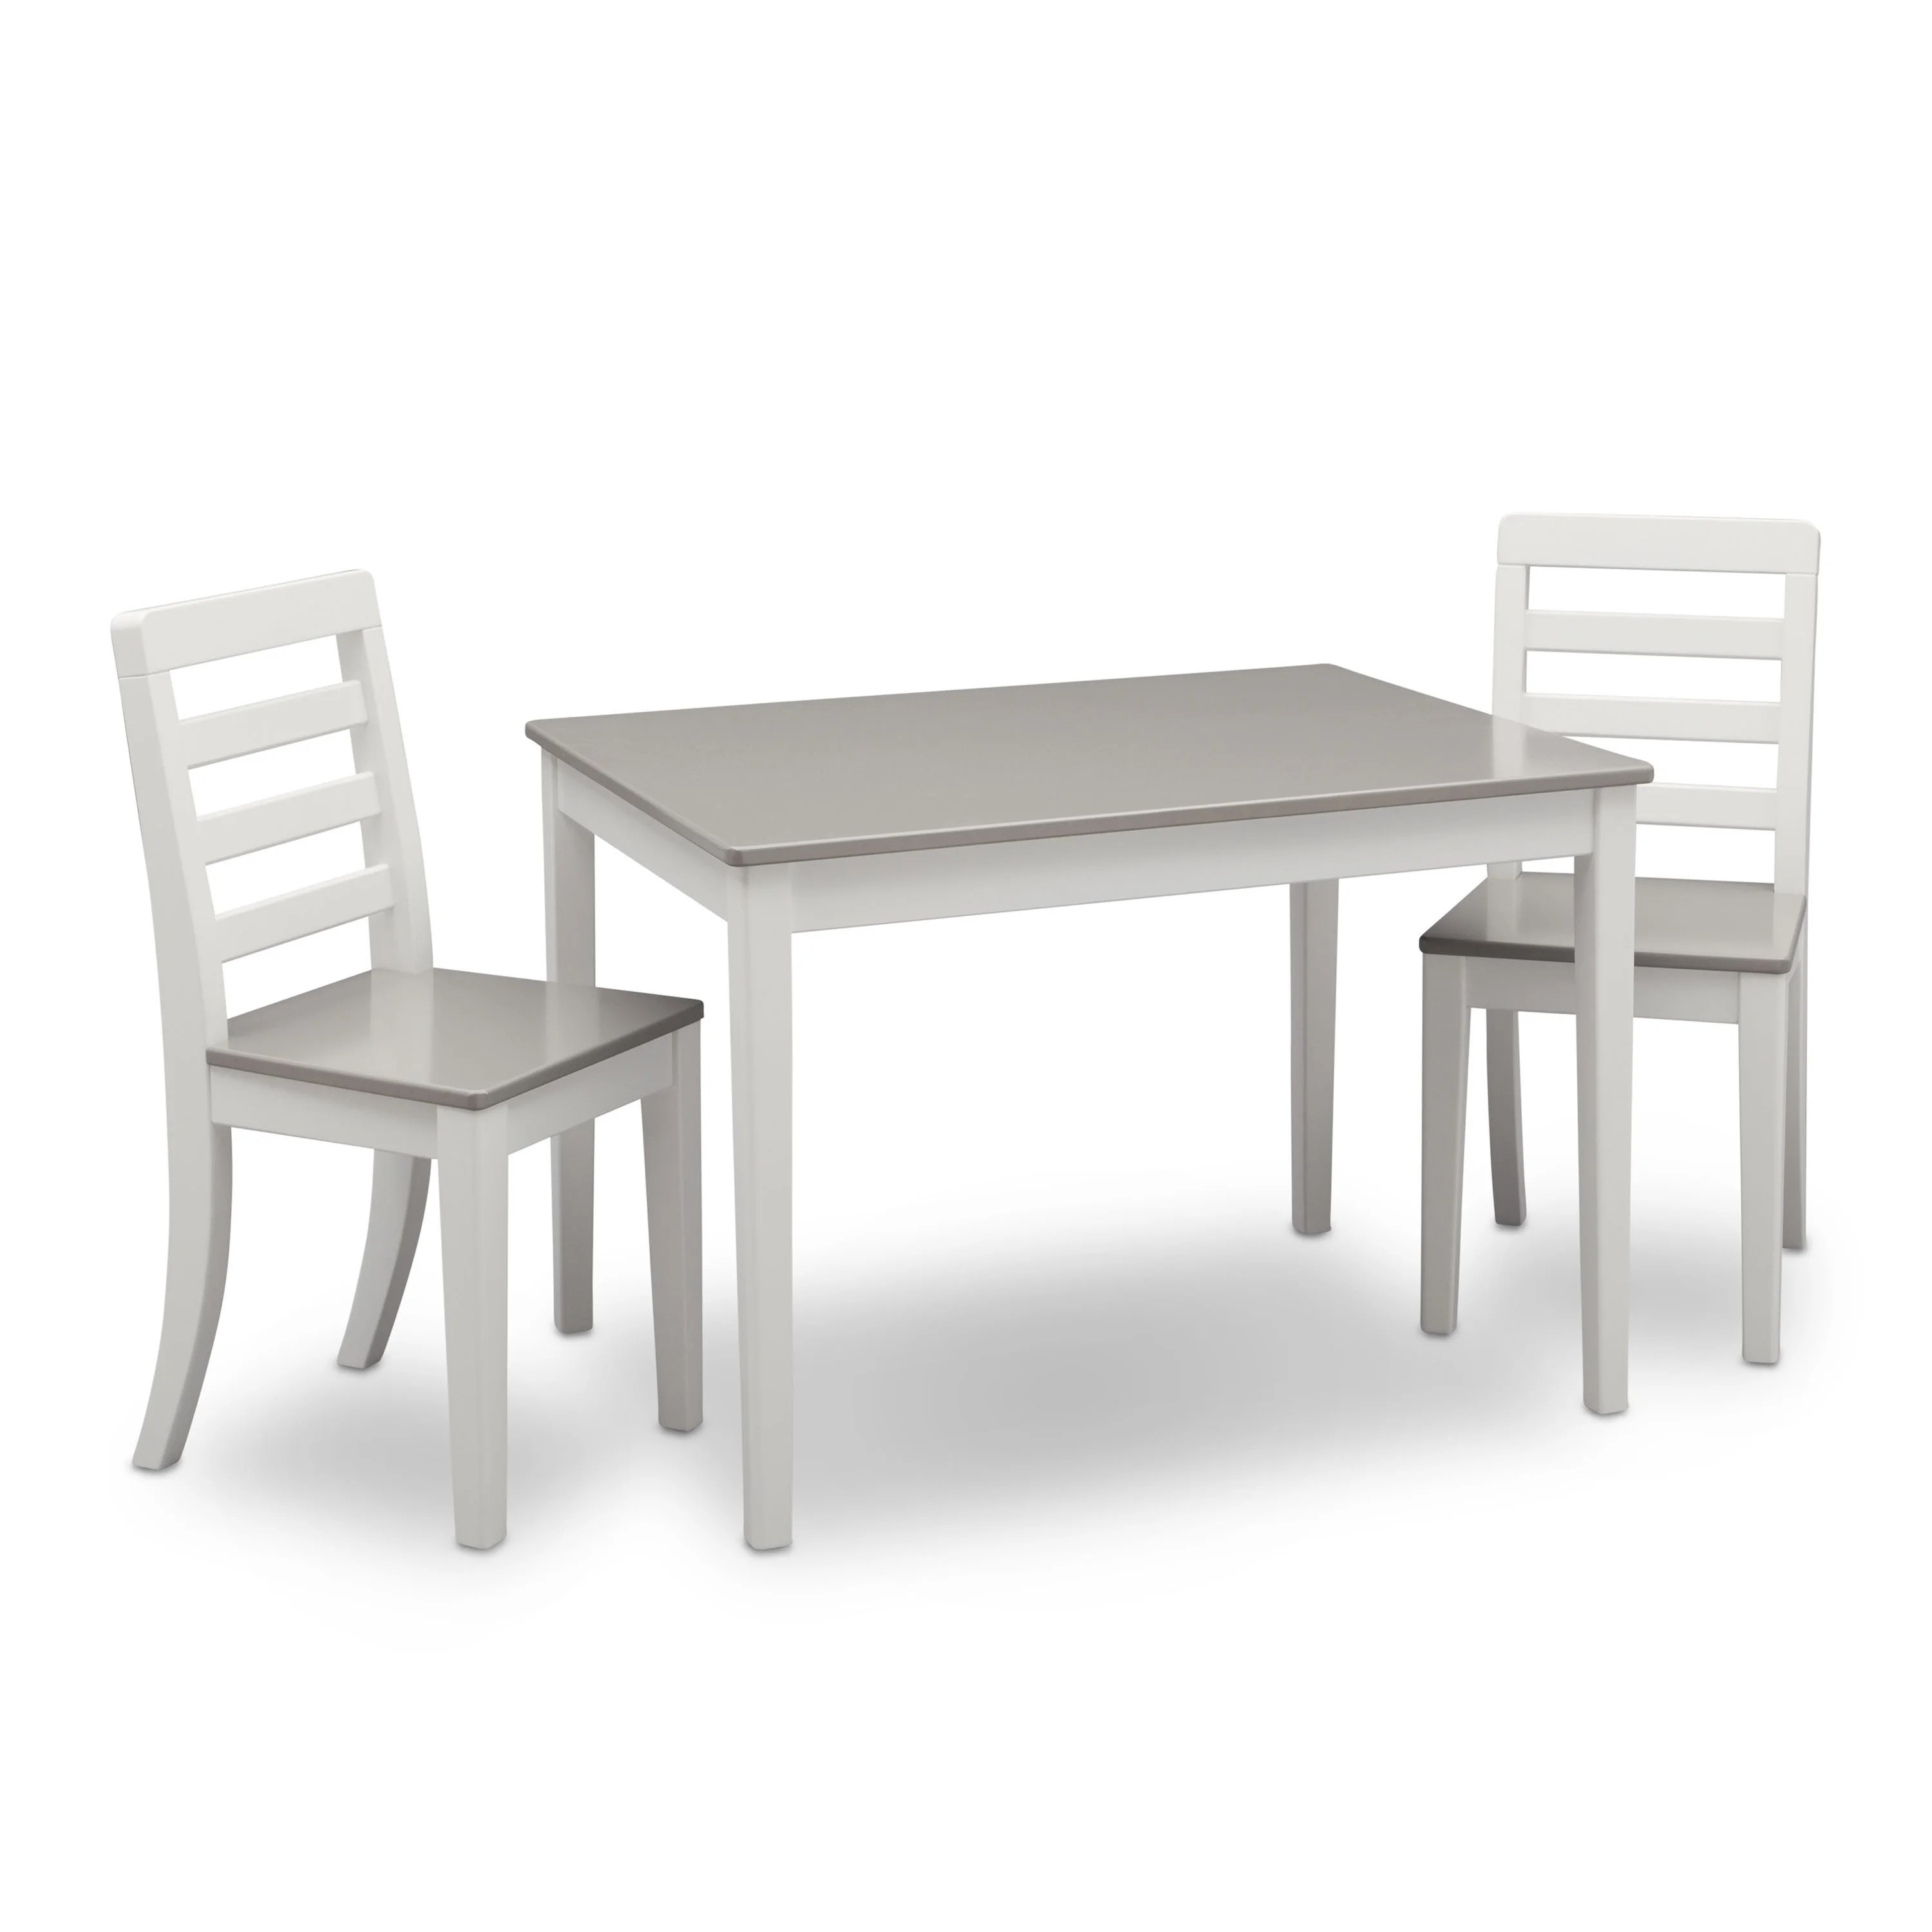 delta children 3 piece table and chairs set